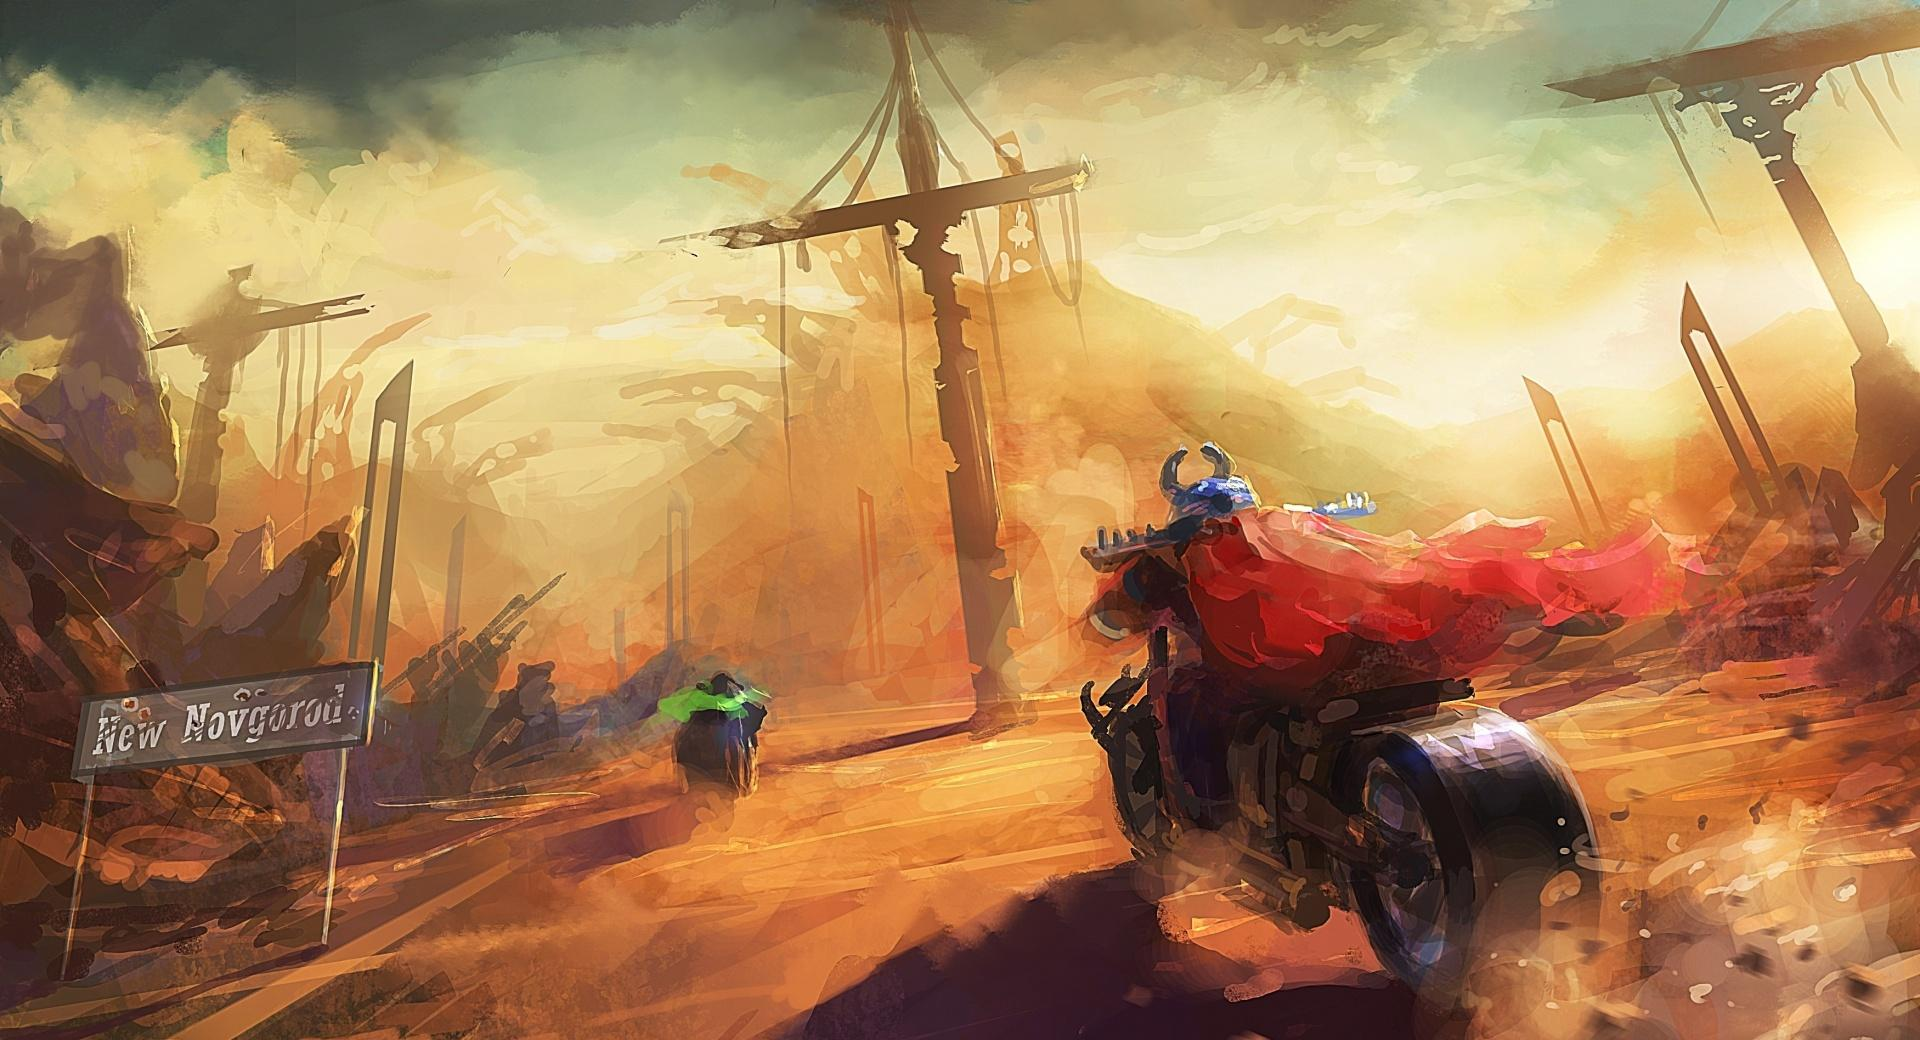 Motorcycles Painting wallpapers HD quality